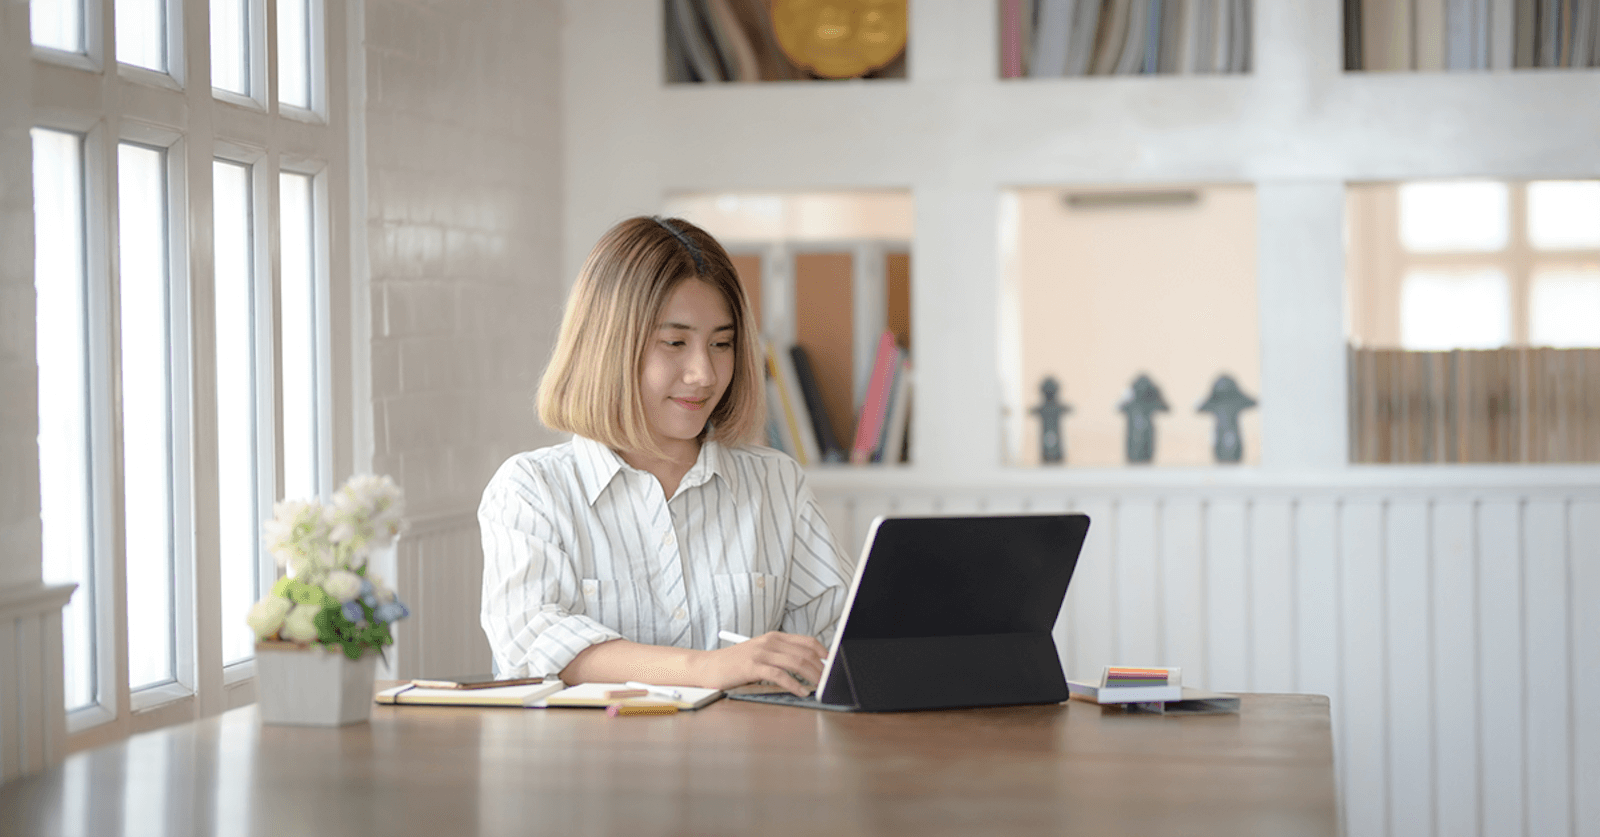 Woman at a desk smiling while looking at her tablet